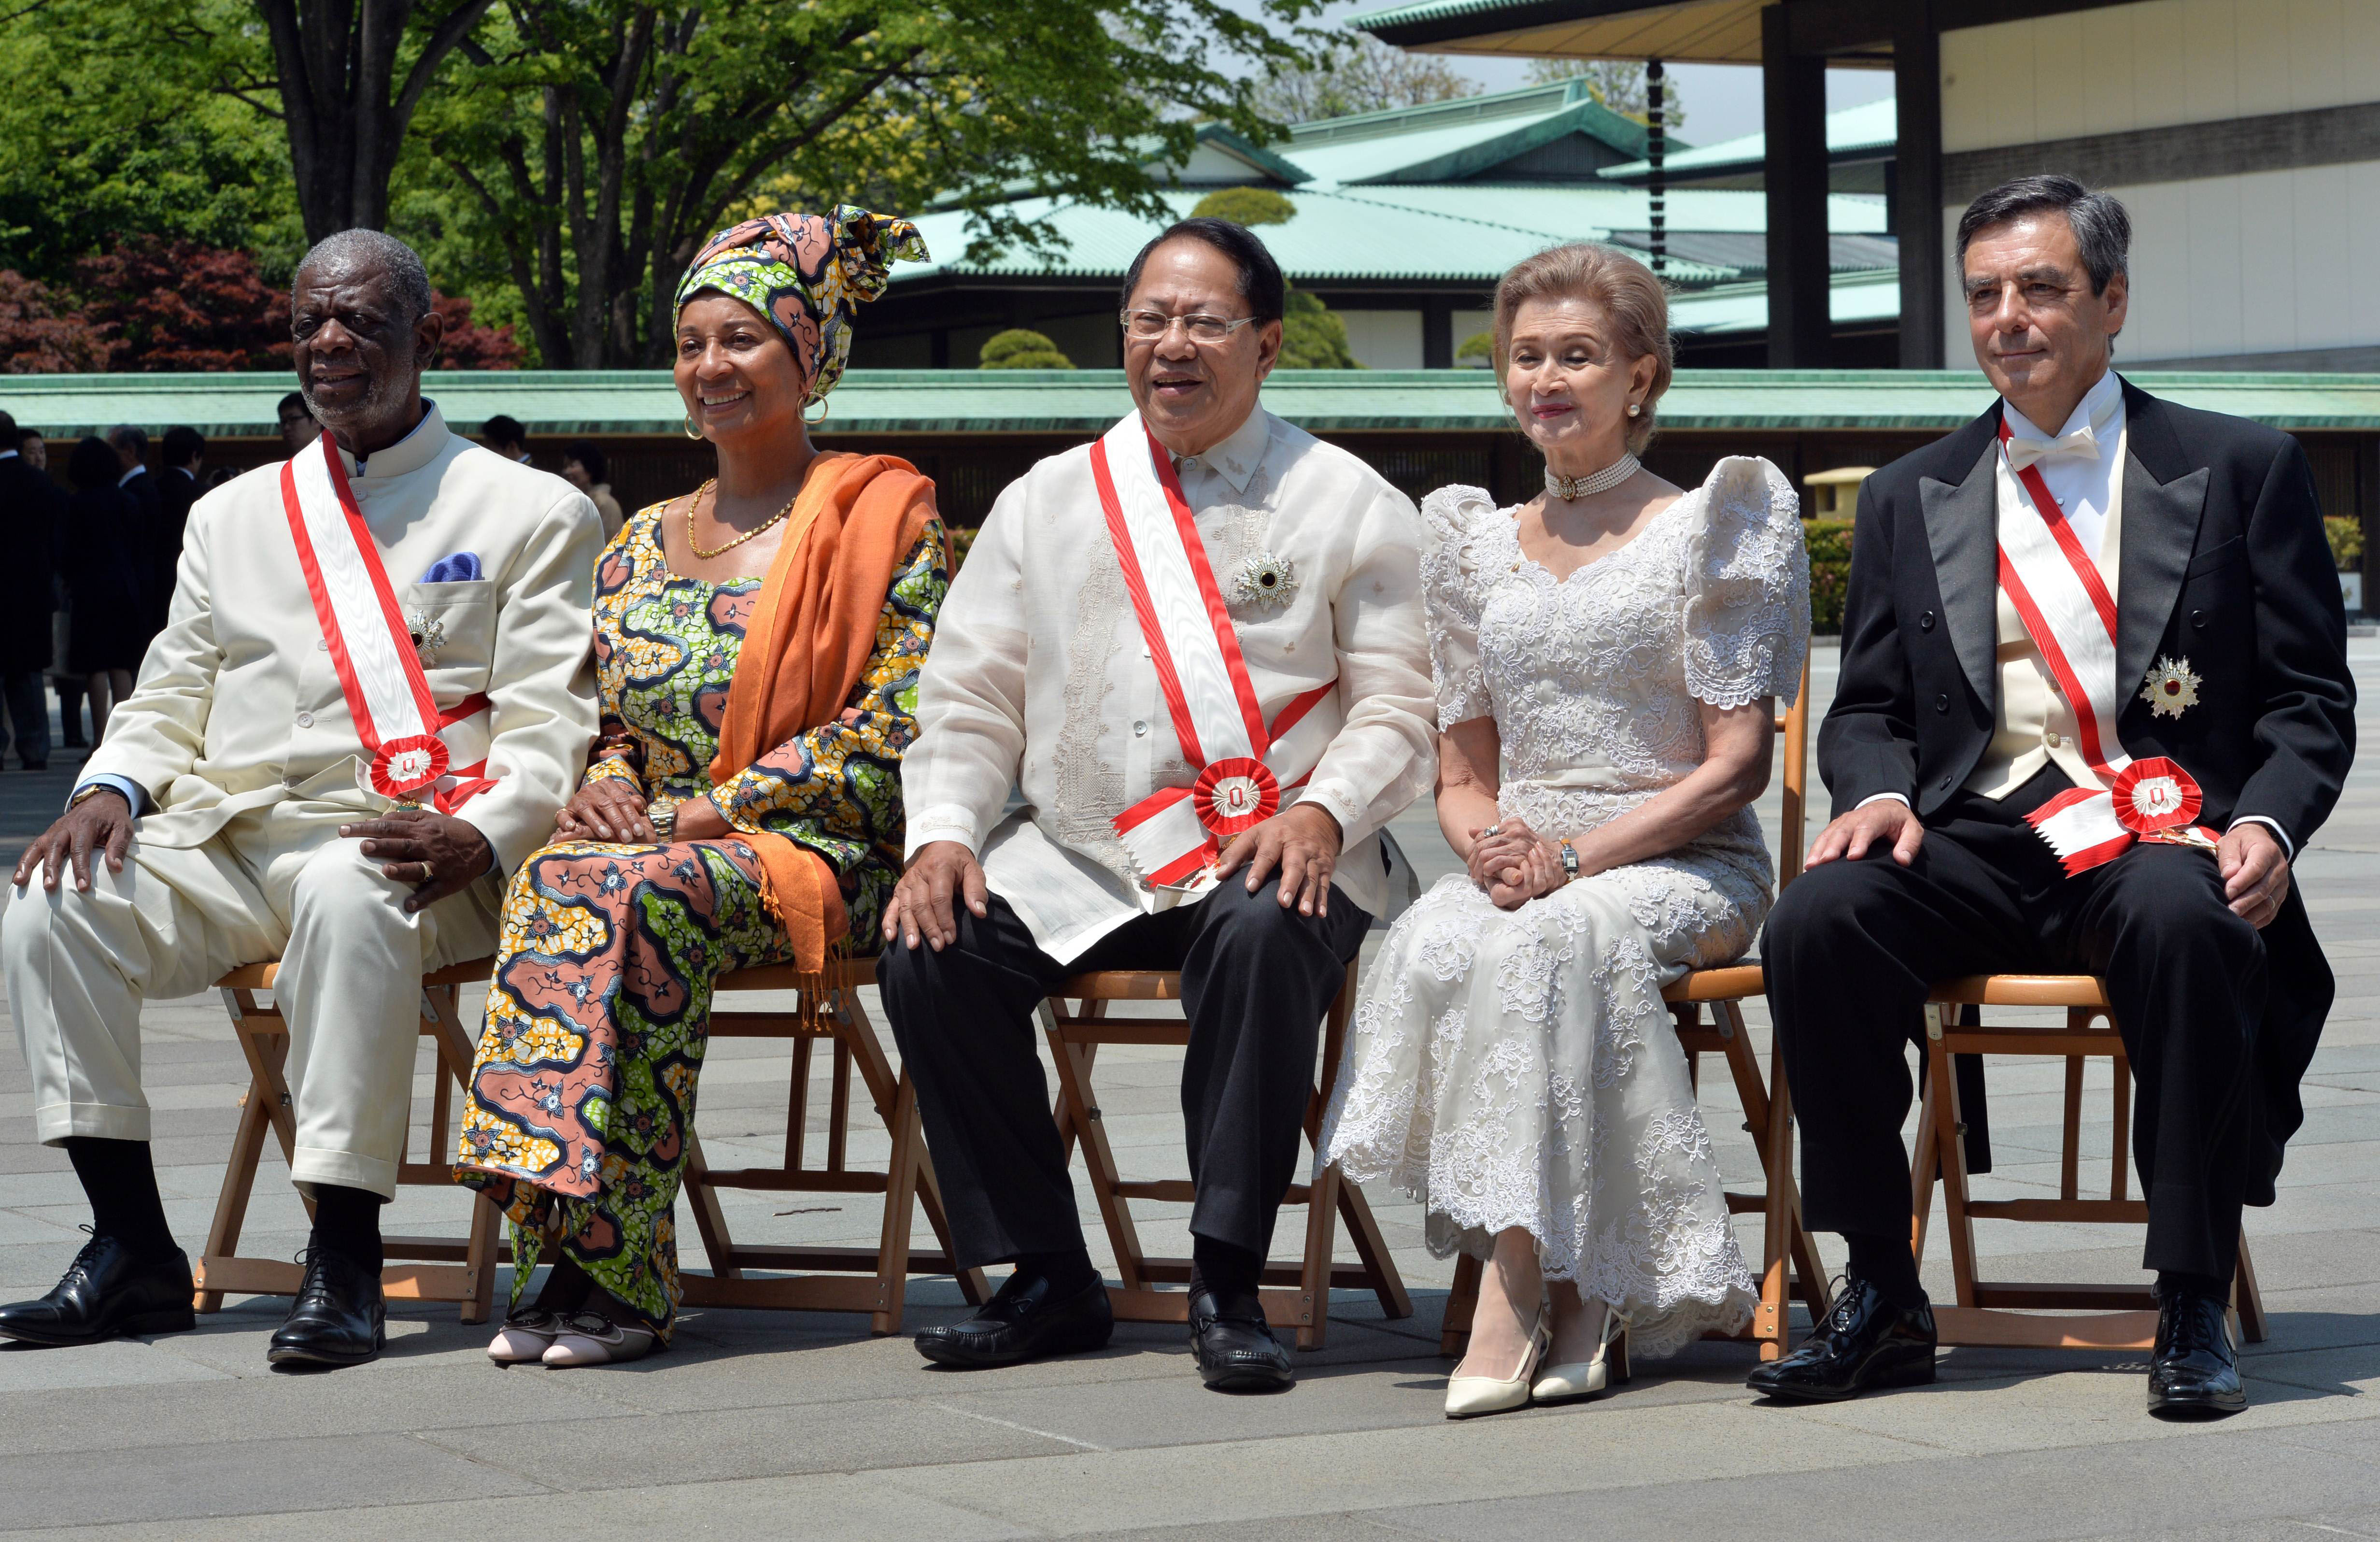 Honored: Former French Prime Minister Francois Fillon (right) poses for photos with former Philippines Senate President Edgardo Angara (center), his wife, Gloria Manalag (second from right), former Namibian Prime Minister Theo-Ben Gurirab (left) and his wife, Joan Guriras, after receiving the Grand Cordon of the Order of the Rising Sun in Tokyo on Thursday.   AFP-JIJI